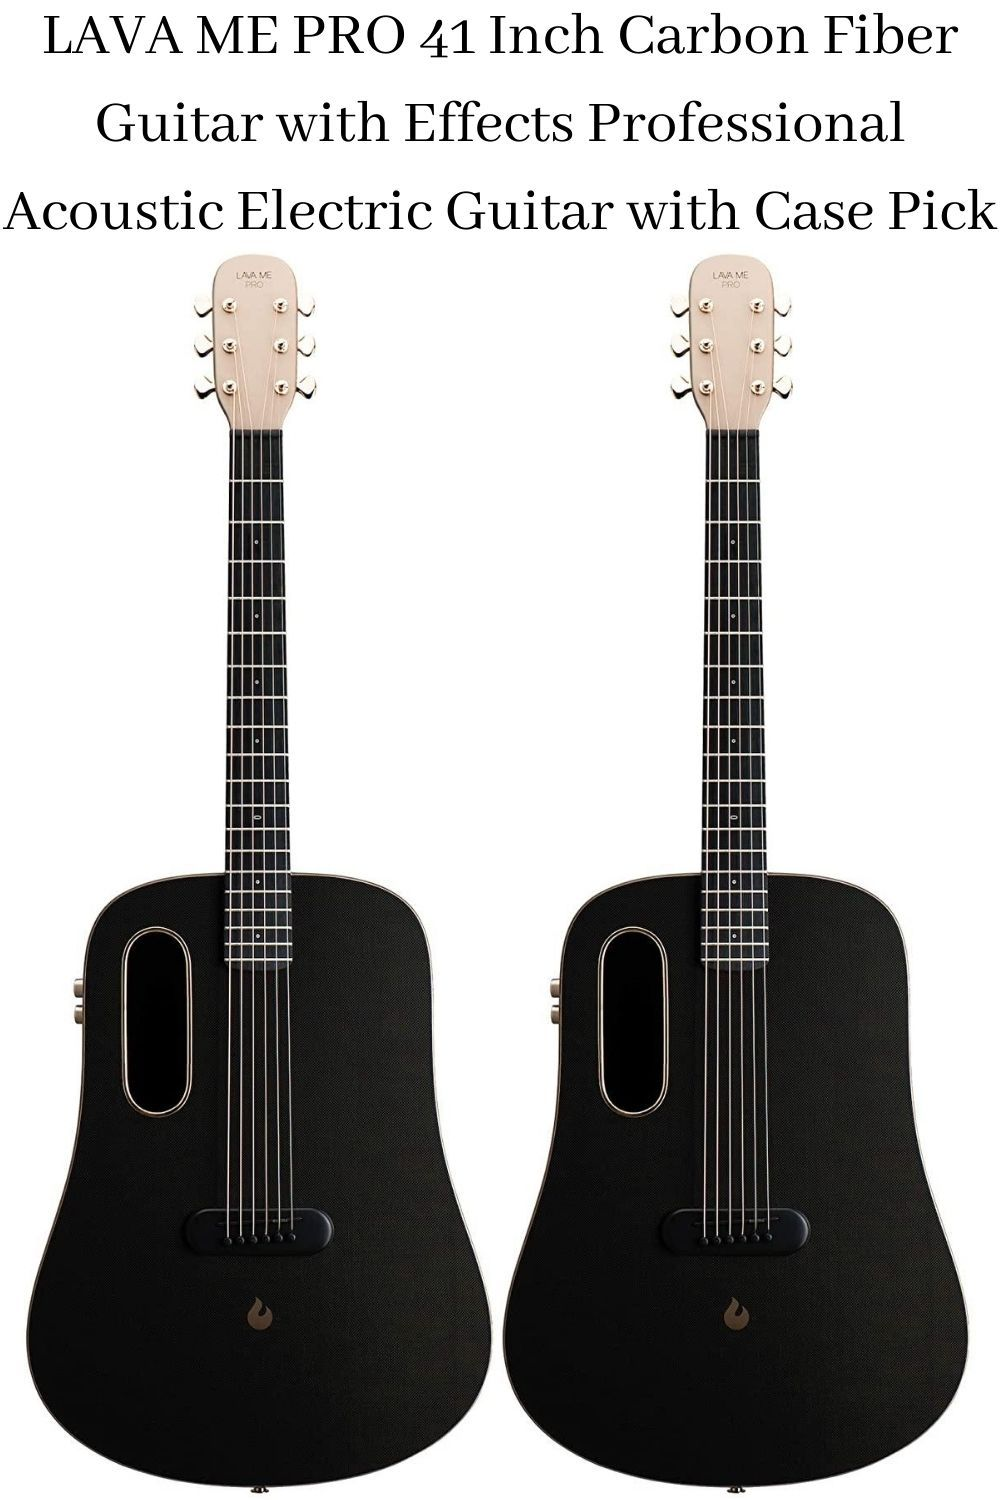 Lava Me Pro 41 Inch Carbon Fiber Guitar With Effects Professional Acoustic Electric Guitar With Case Acoustic Electric Guitar Guitar Acoustic Electric